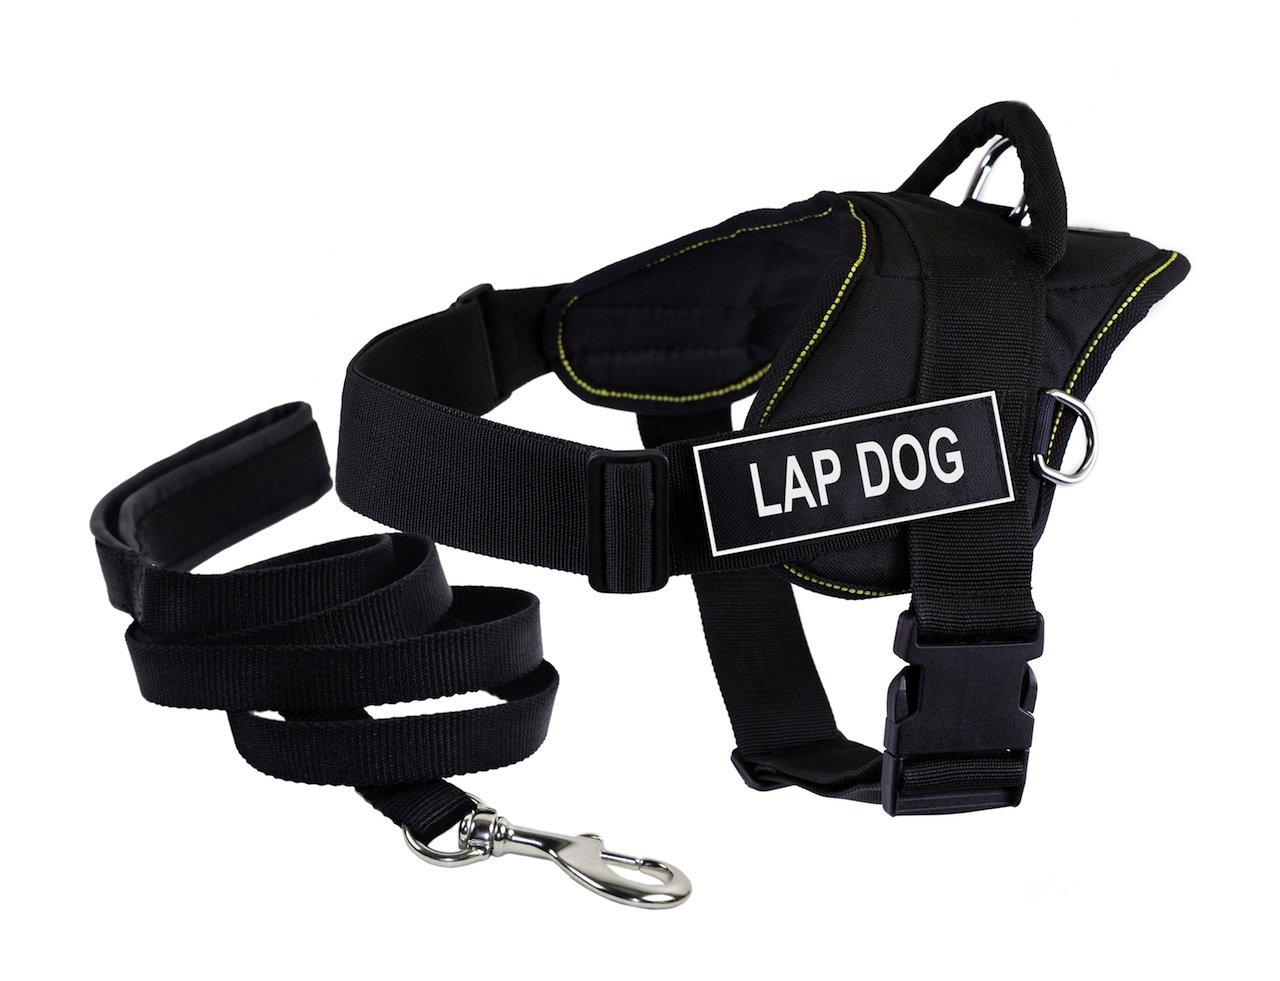 Dean & Tyler's DT Fun LAP DOG Harness, Medium, with 6 ft Padded Puppy Leash.